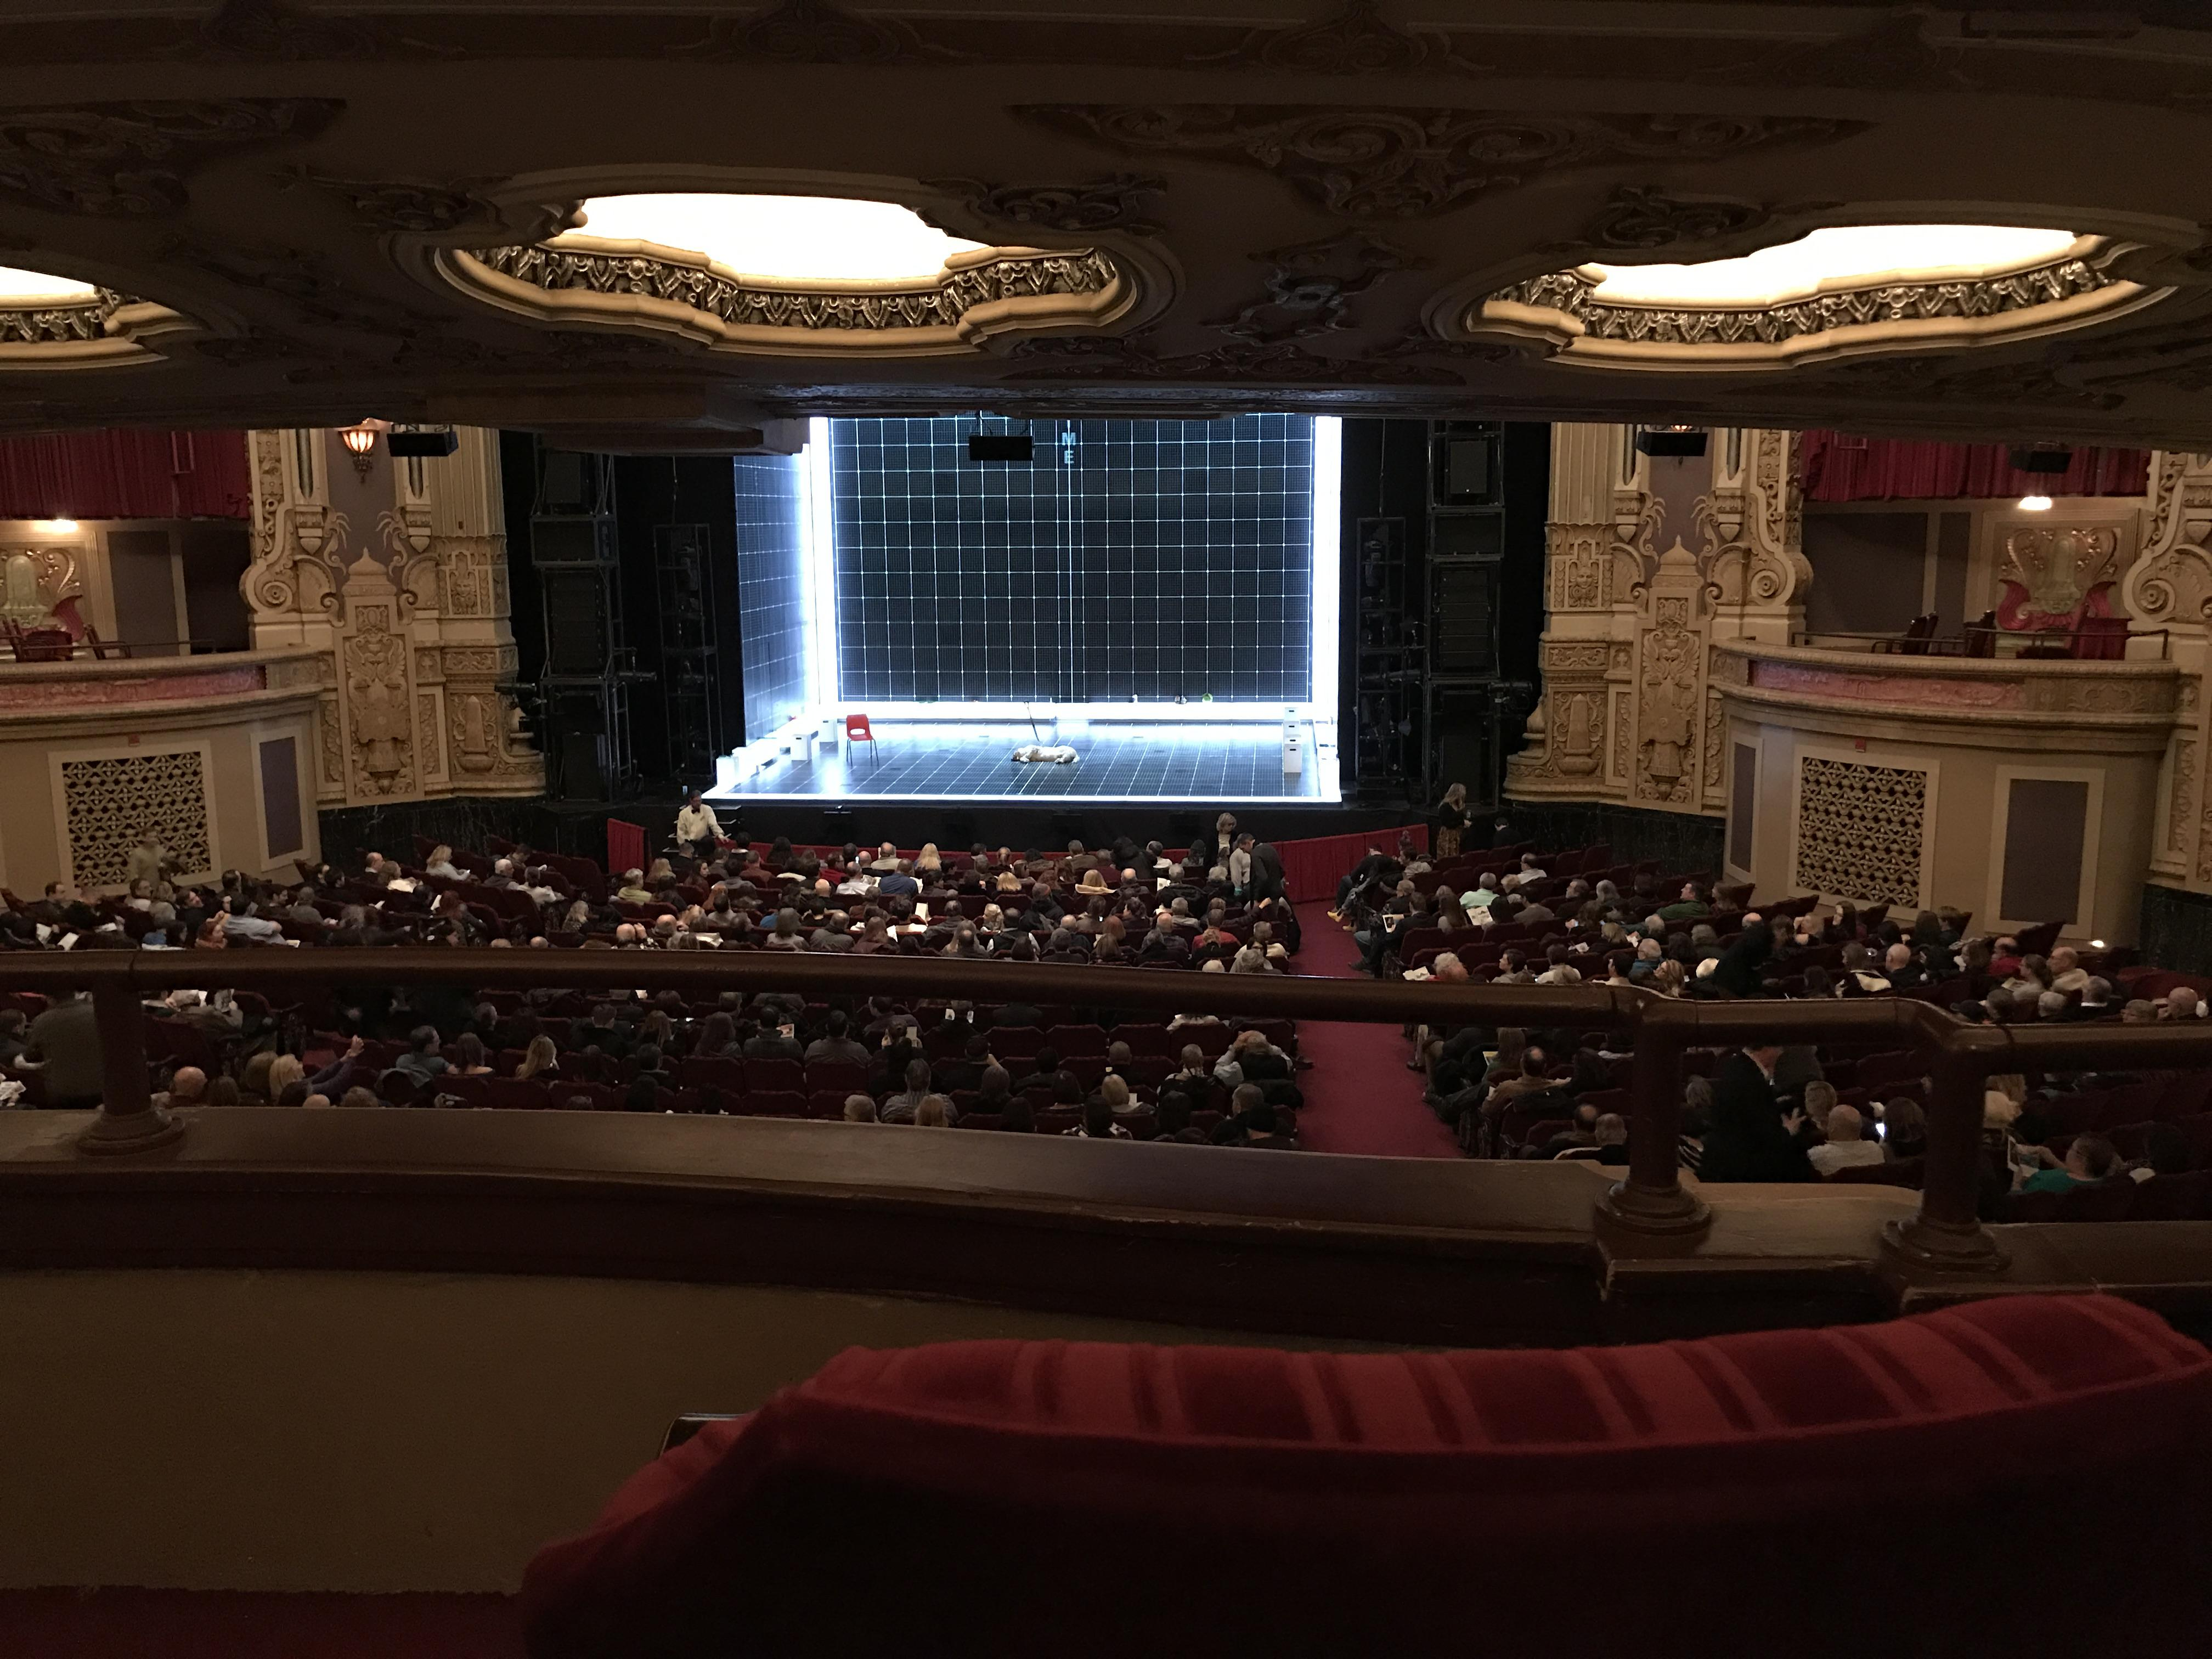 Nederlander Theatre (Chicago) Section Dress Circle RC Row B Seat 220